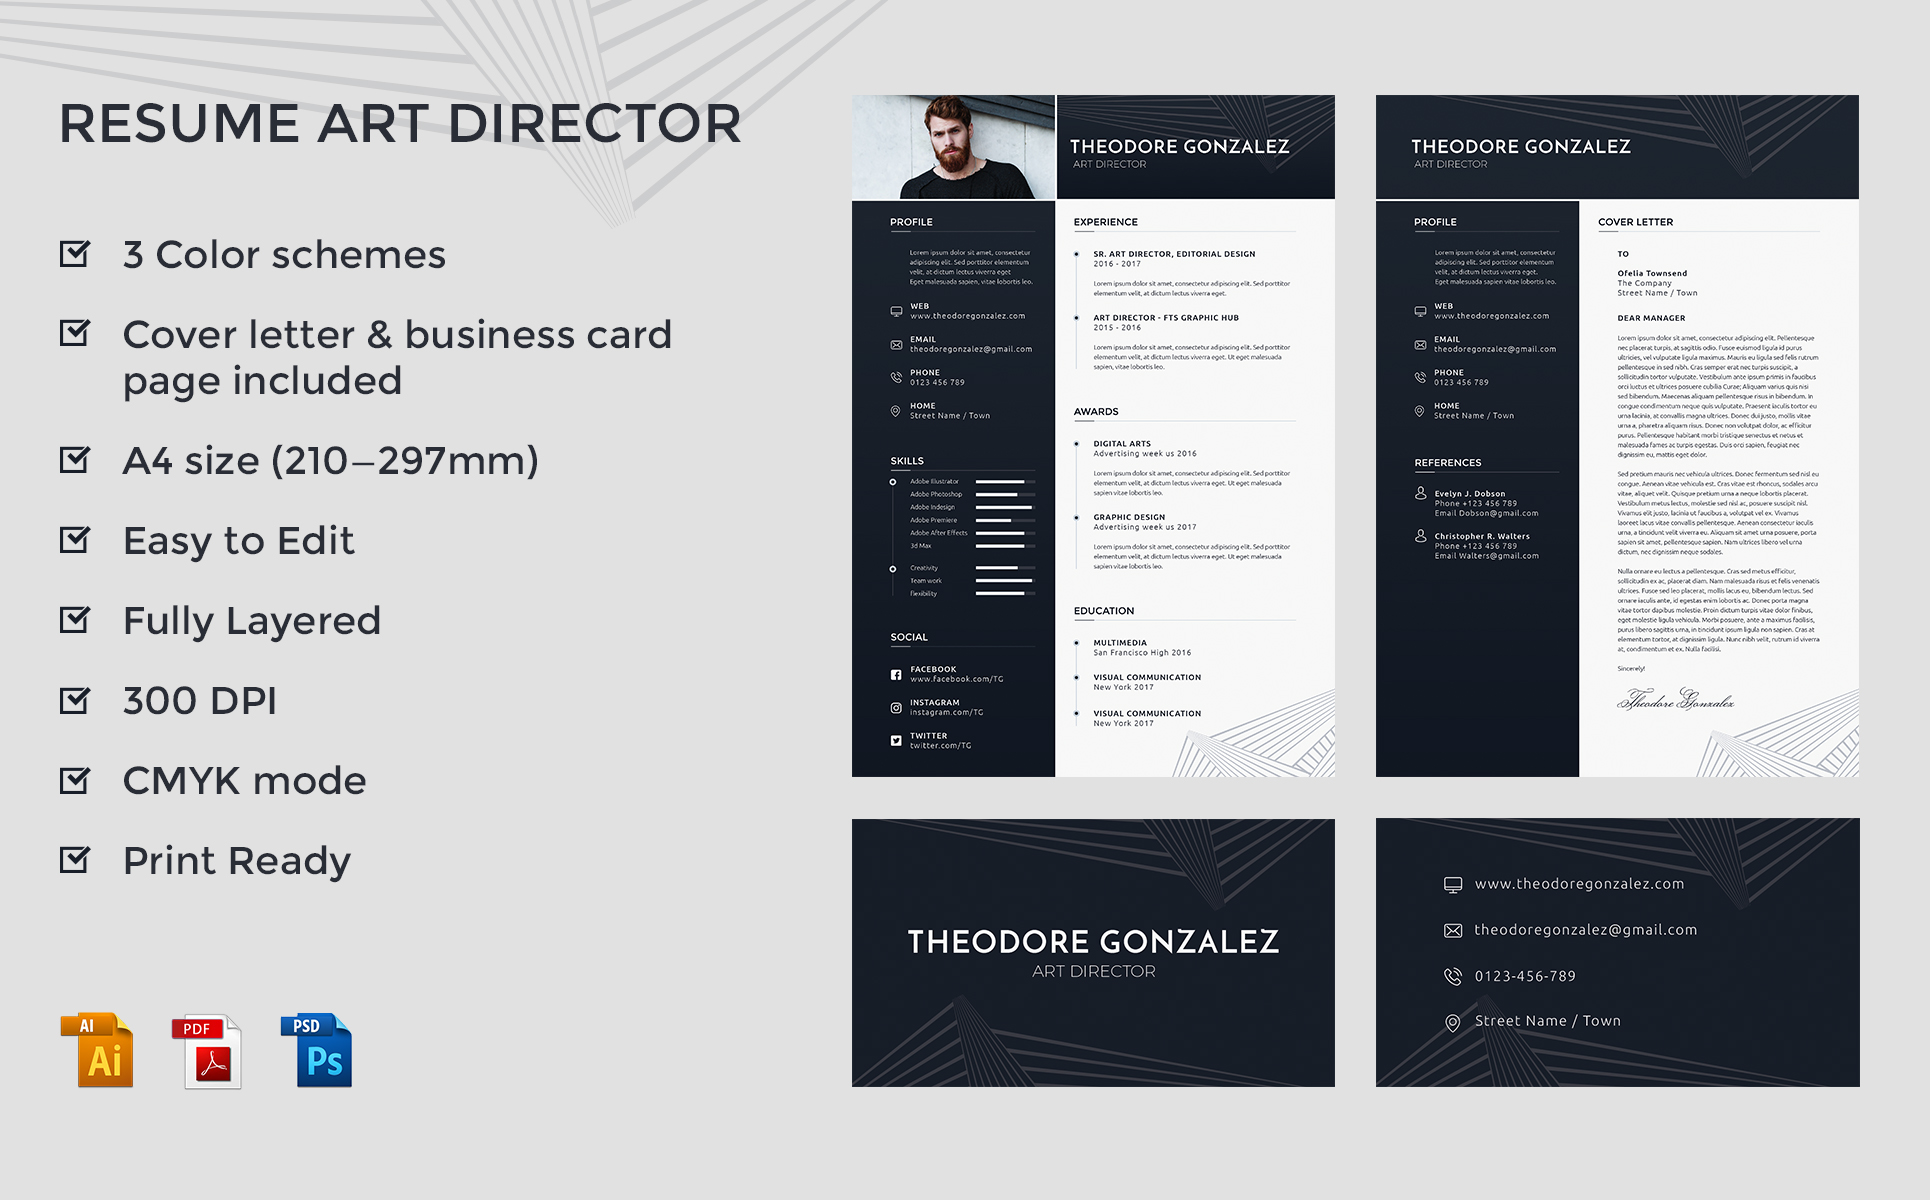 theodore gonzalez art director resume template 65437